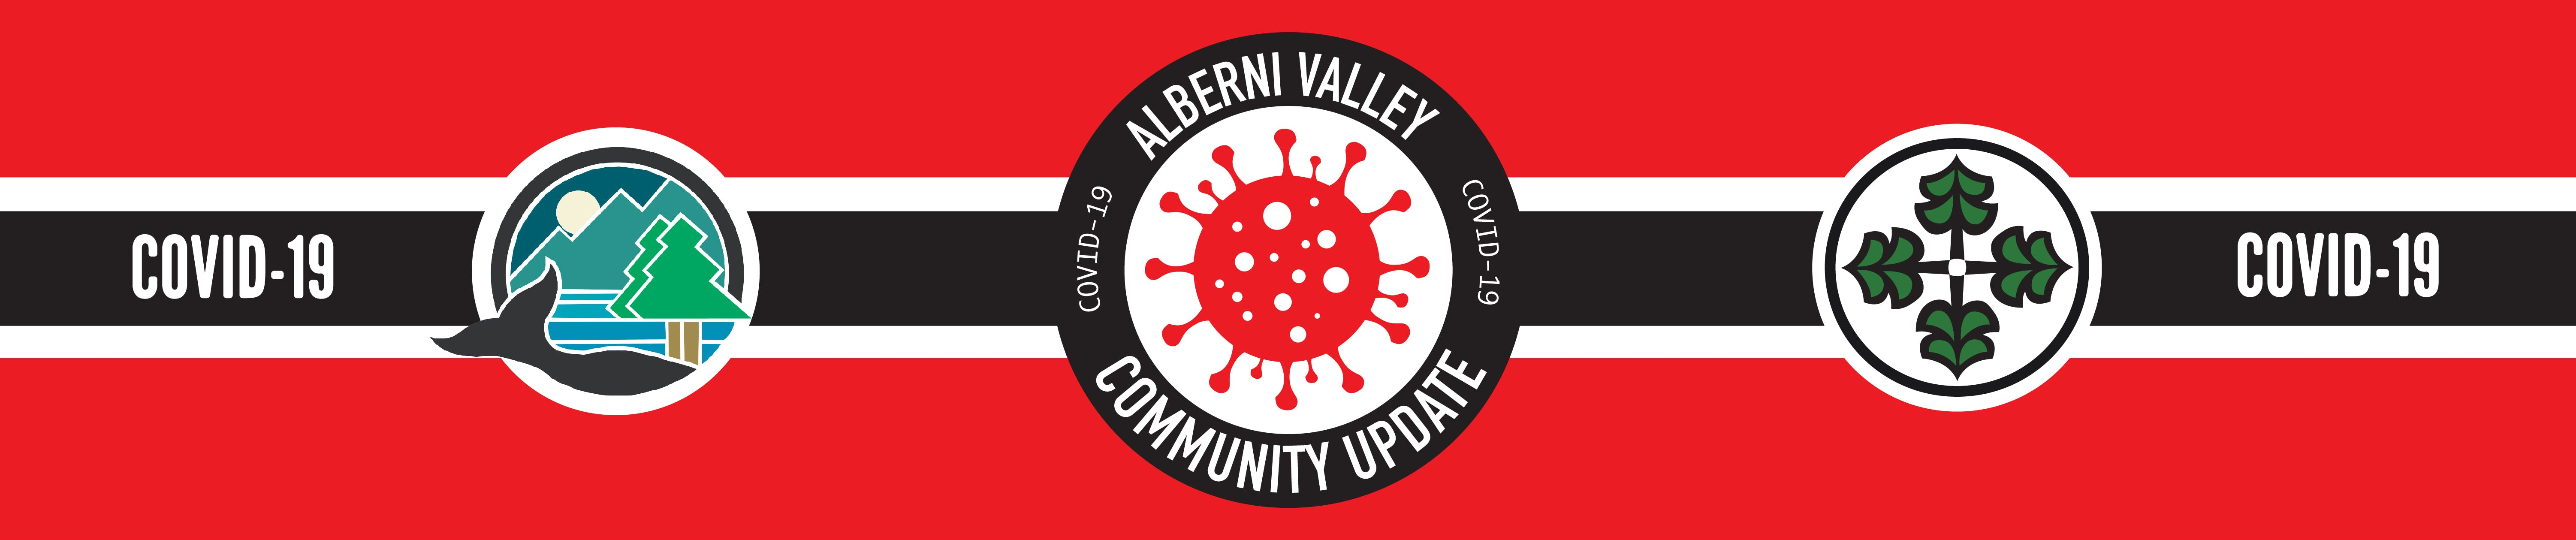 Joint banner City and ACRD of Alberni Valley COVID-19 response